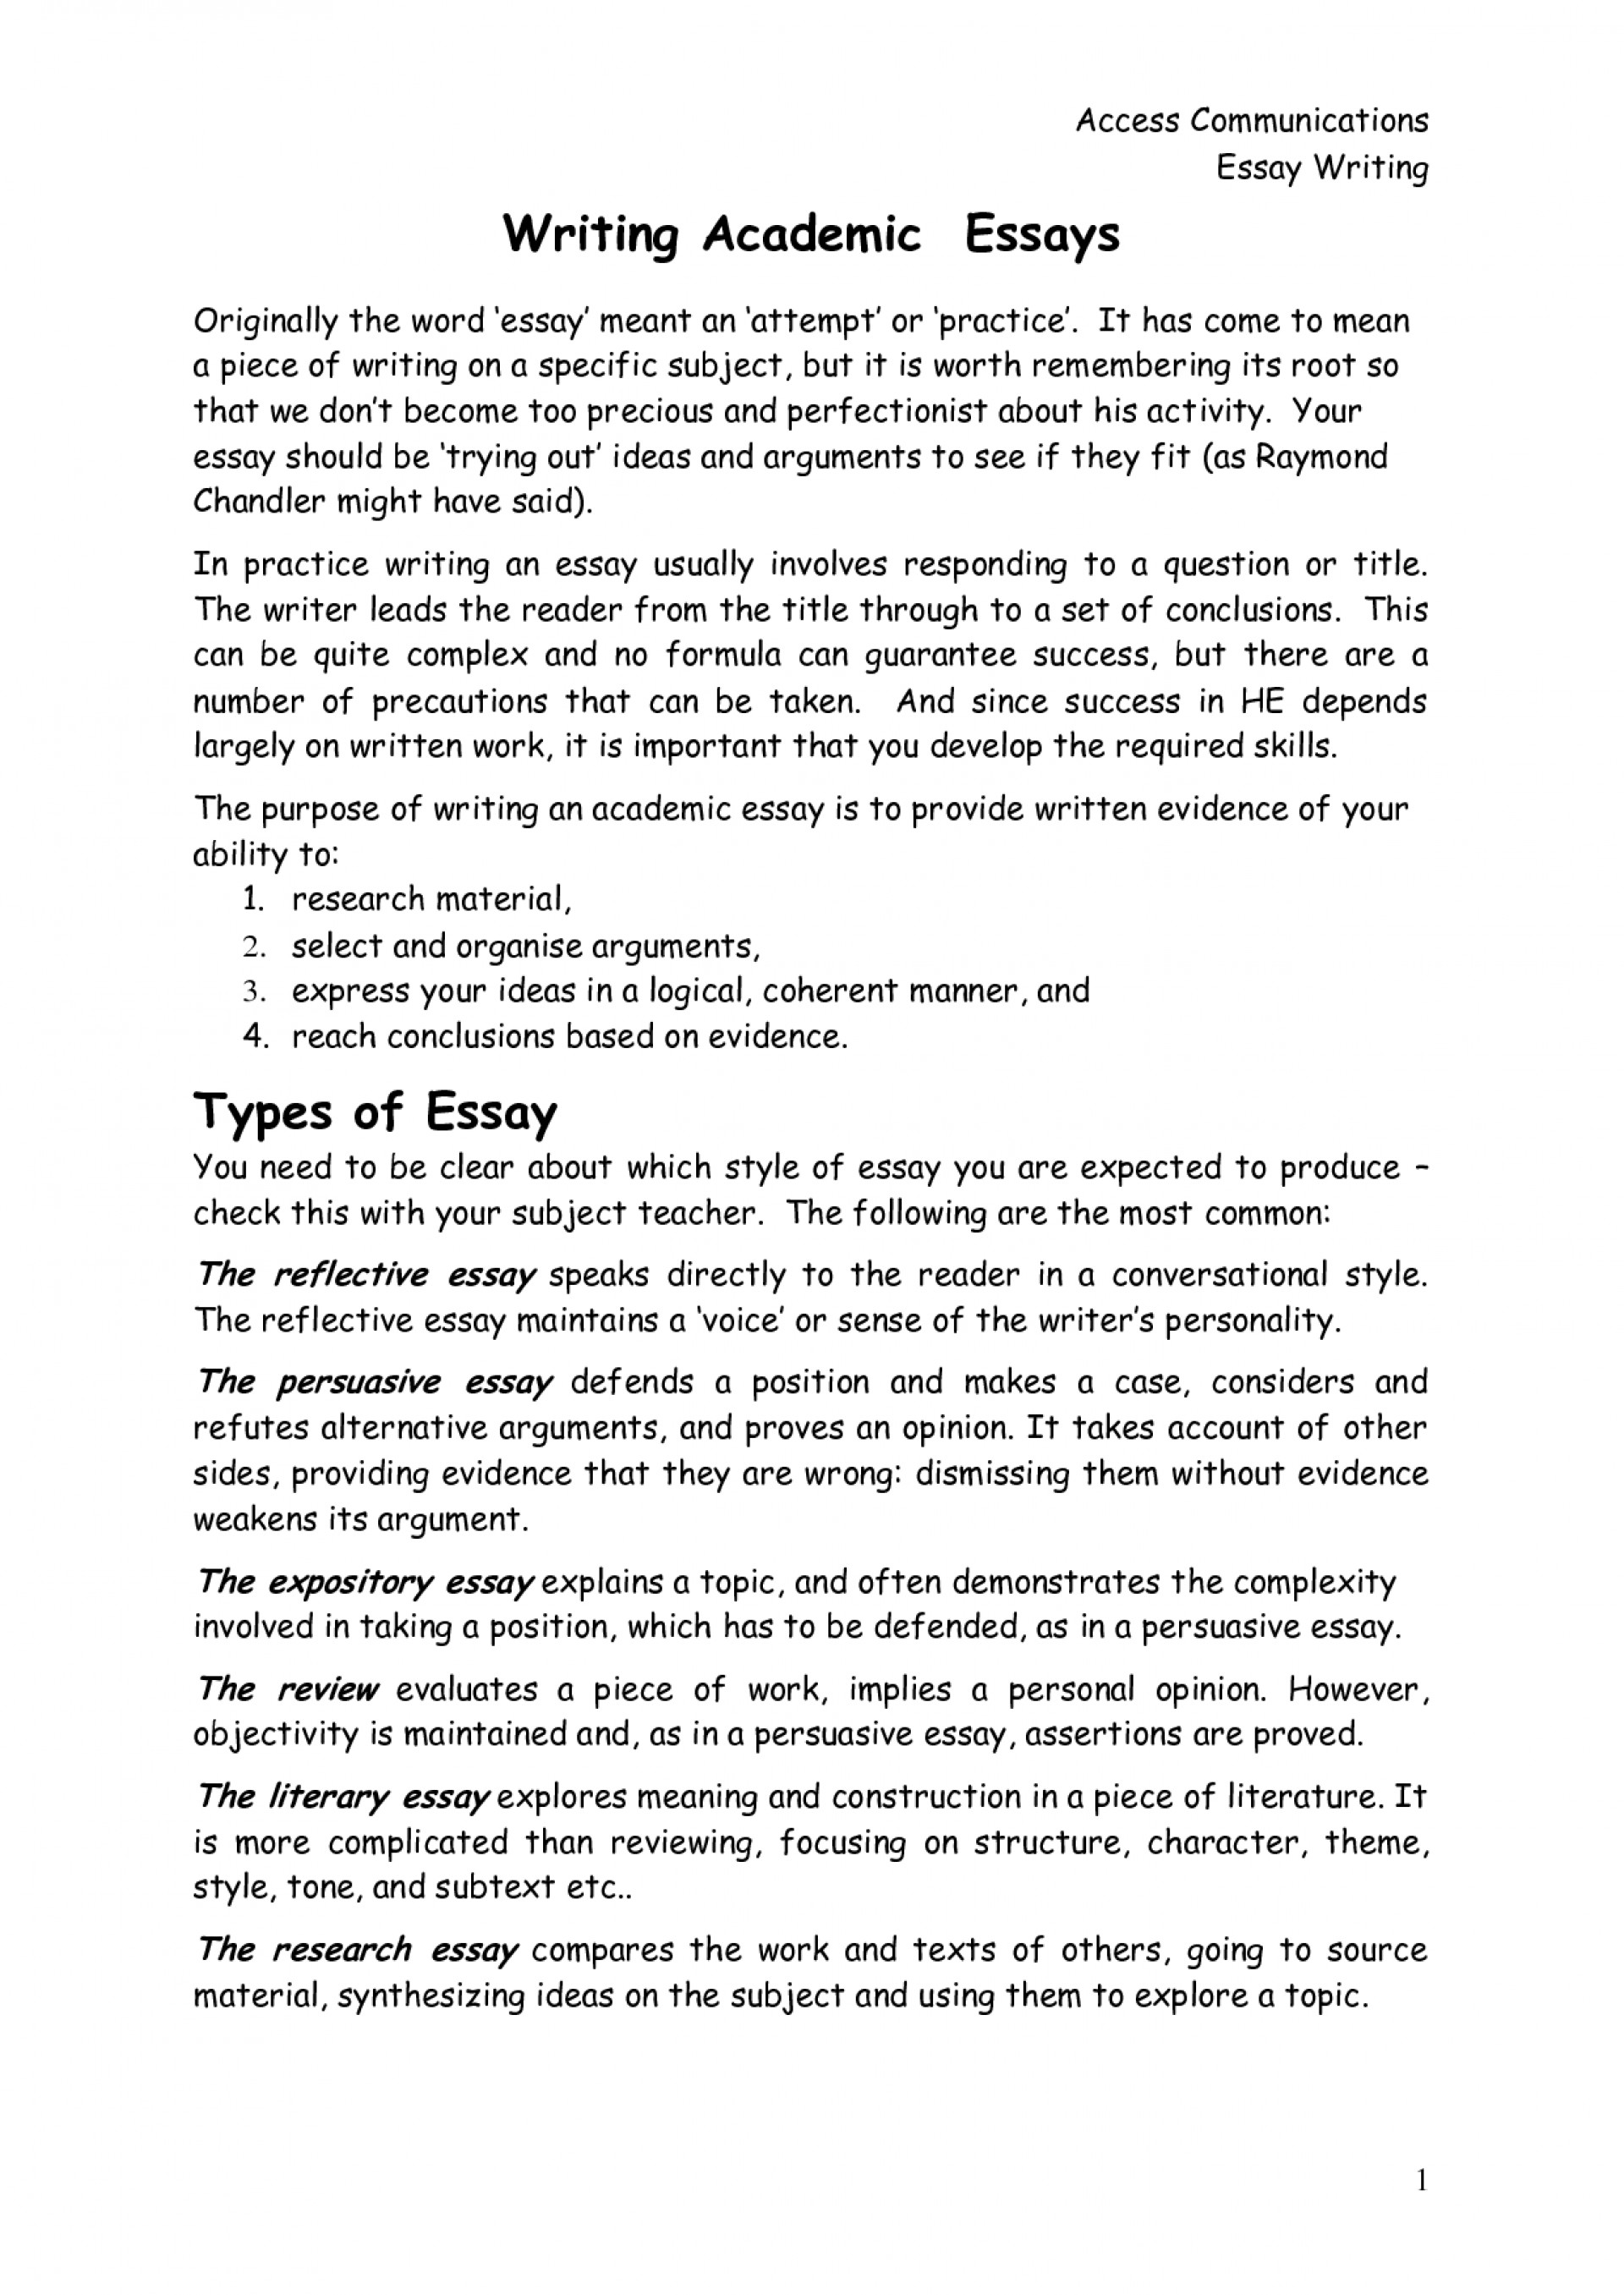 001 Example Academic Research Paper Essay Writing Sample Fuuwz Tense Format Pdf Examples Style Guide Topics Books Fascinating 1920